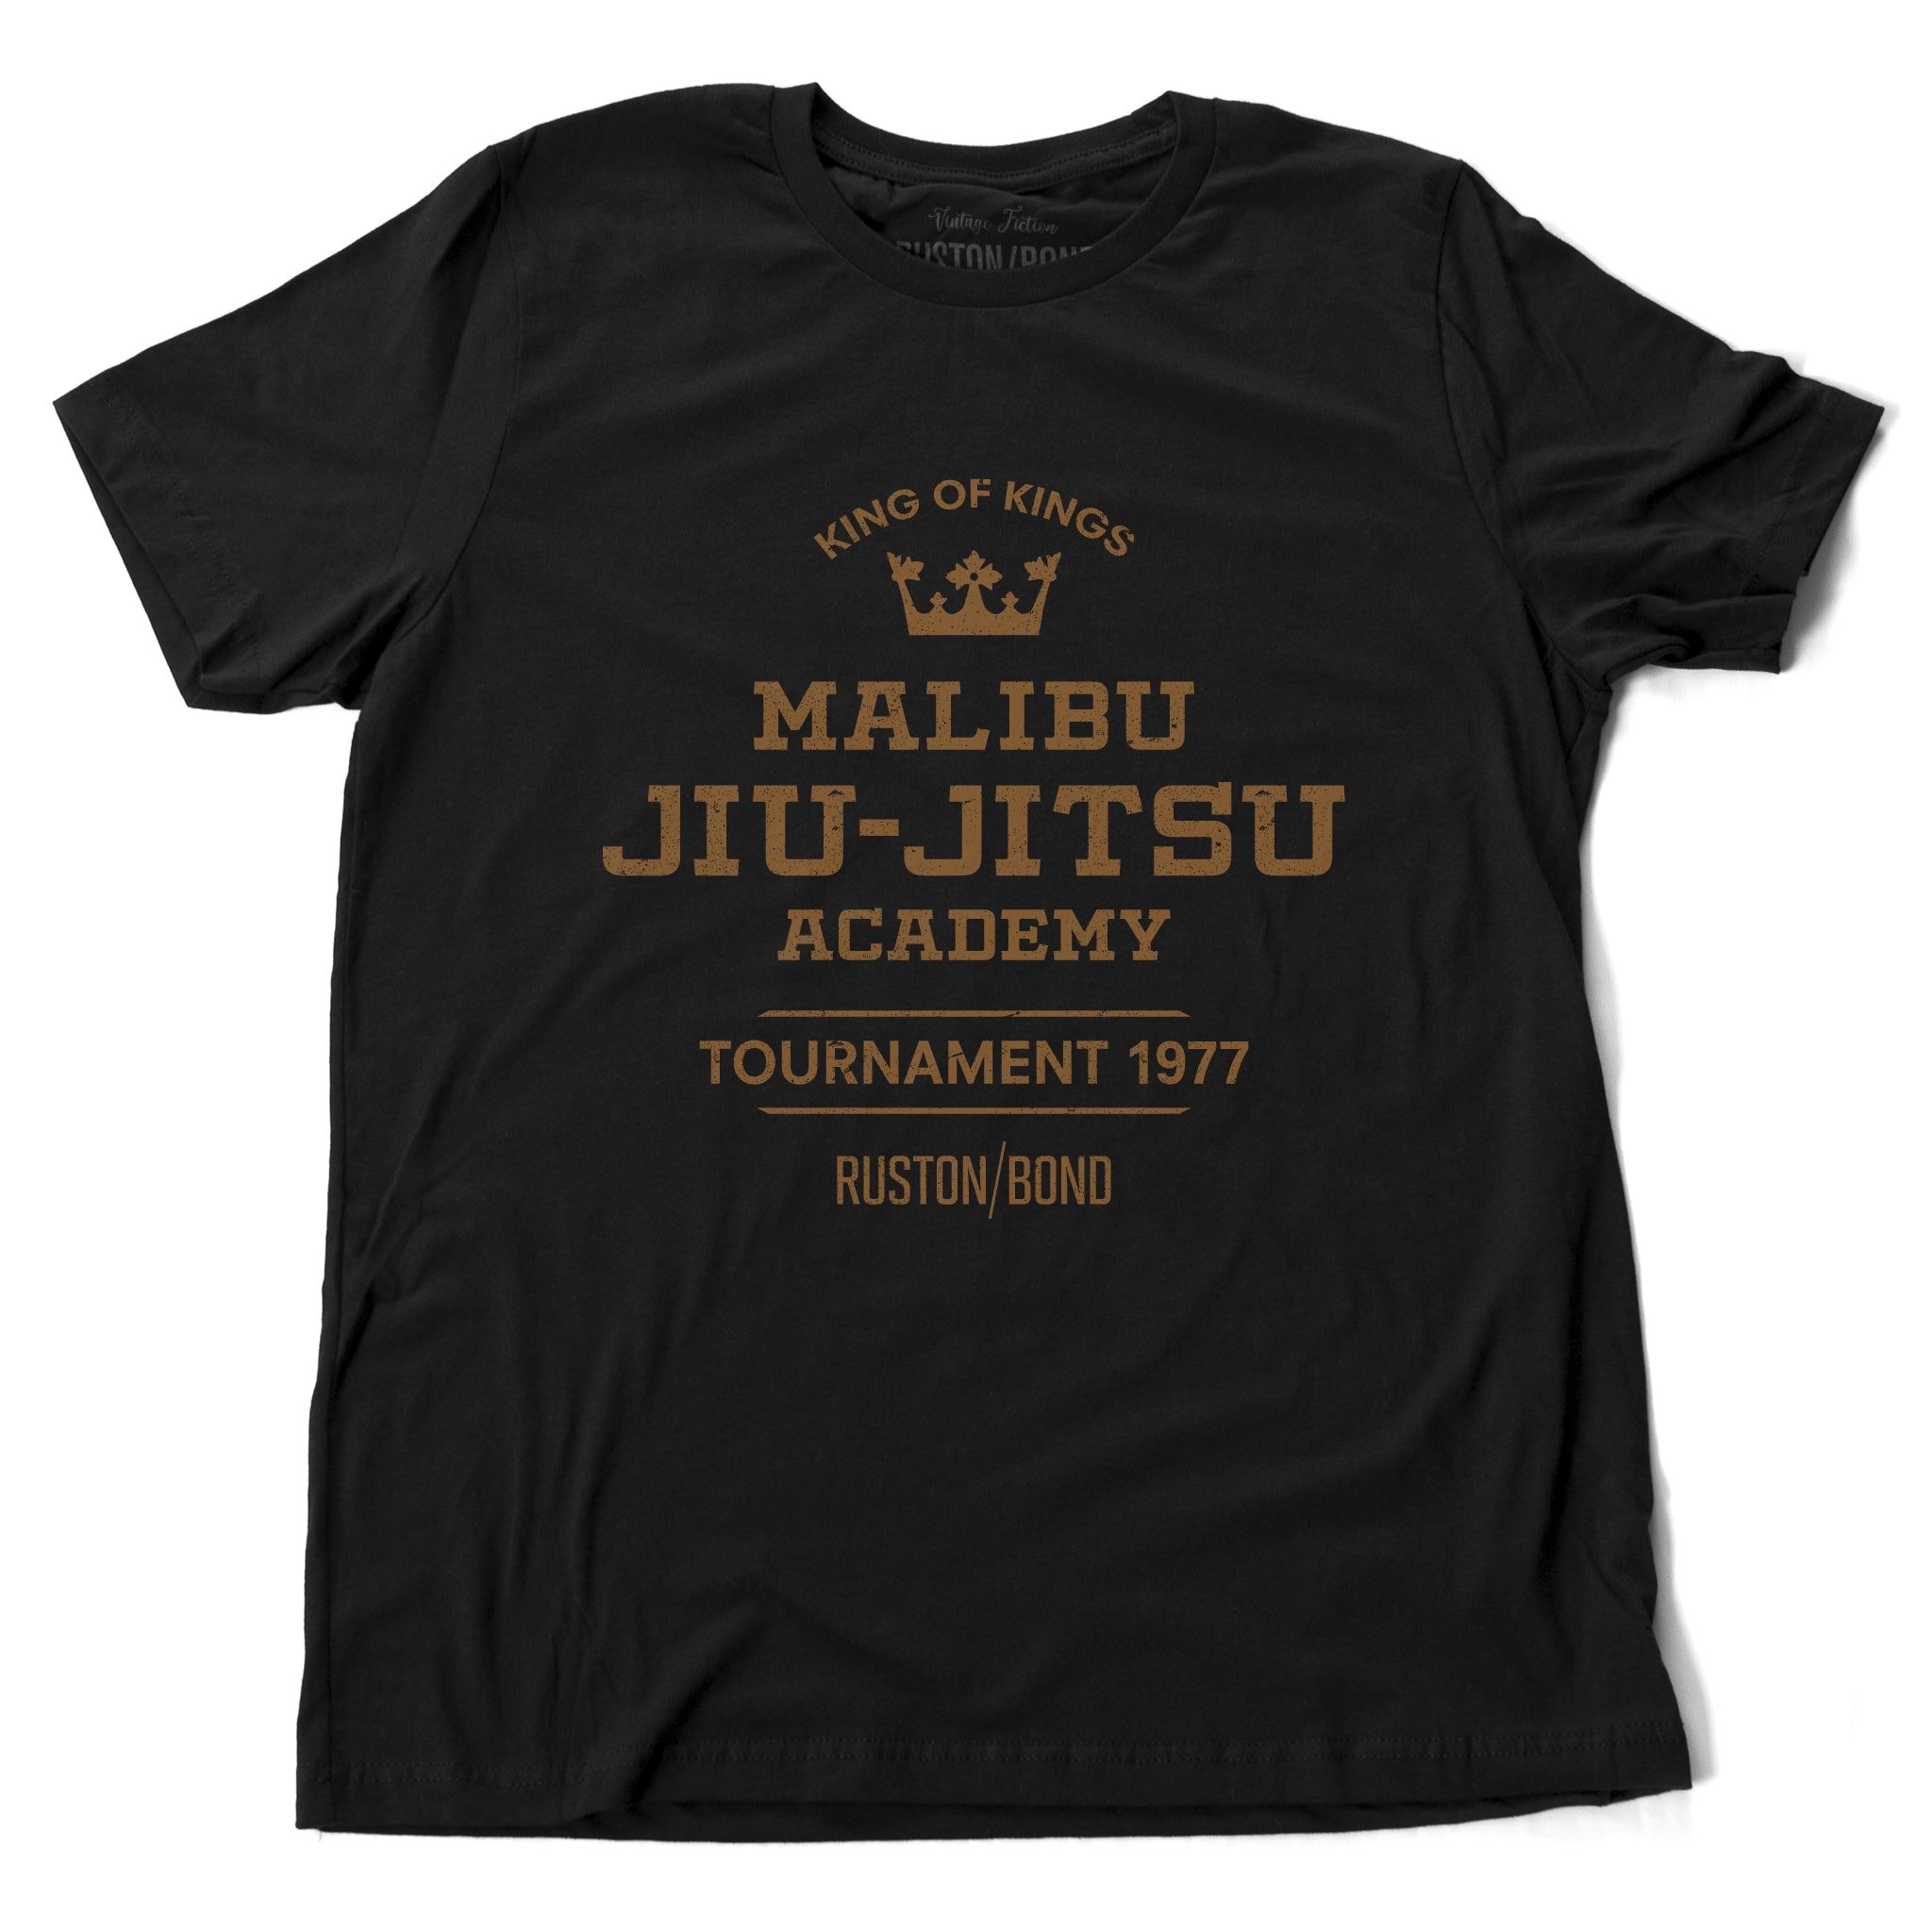 A fashionable, vintage-inspired retro t-shirt in Classic Black, featuring a graphic commemorating a sarcastic and fictitious Malibu (California) Jiu Jitsu academy and a 1977 tournament. By fashion brand Ruston/Bond, from wolfsaint.net